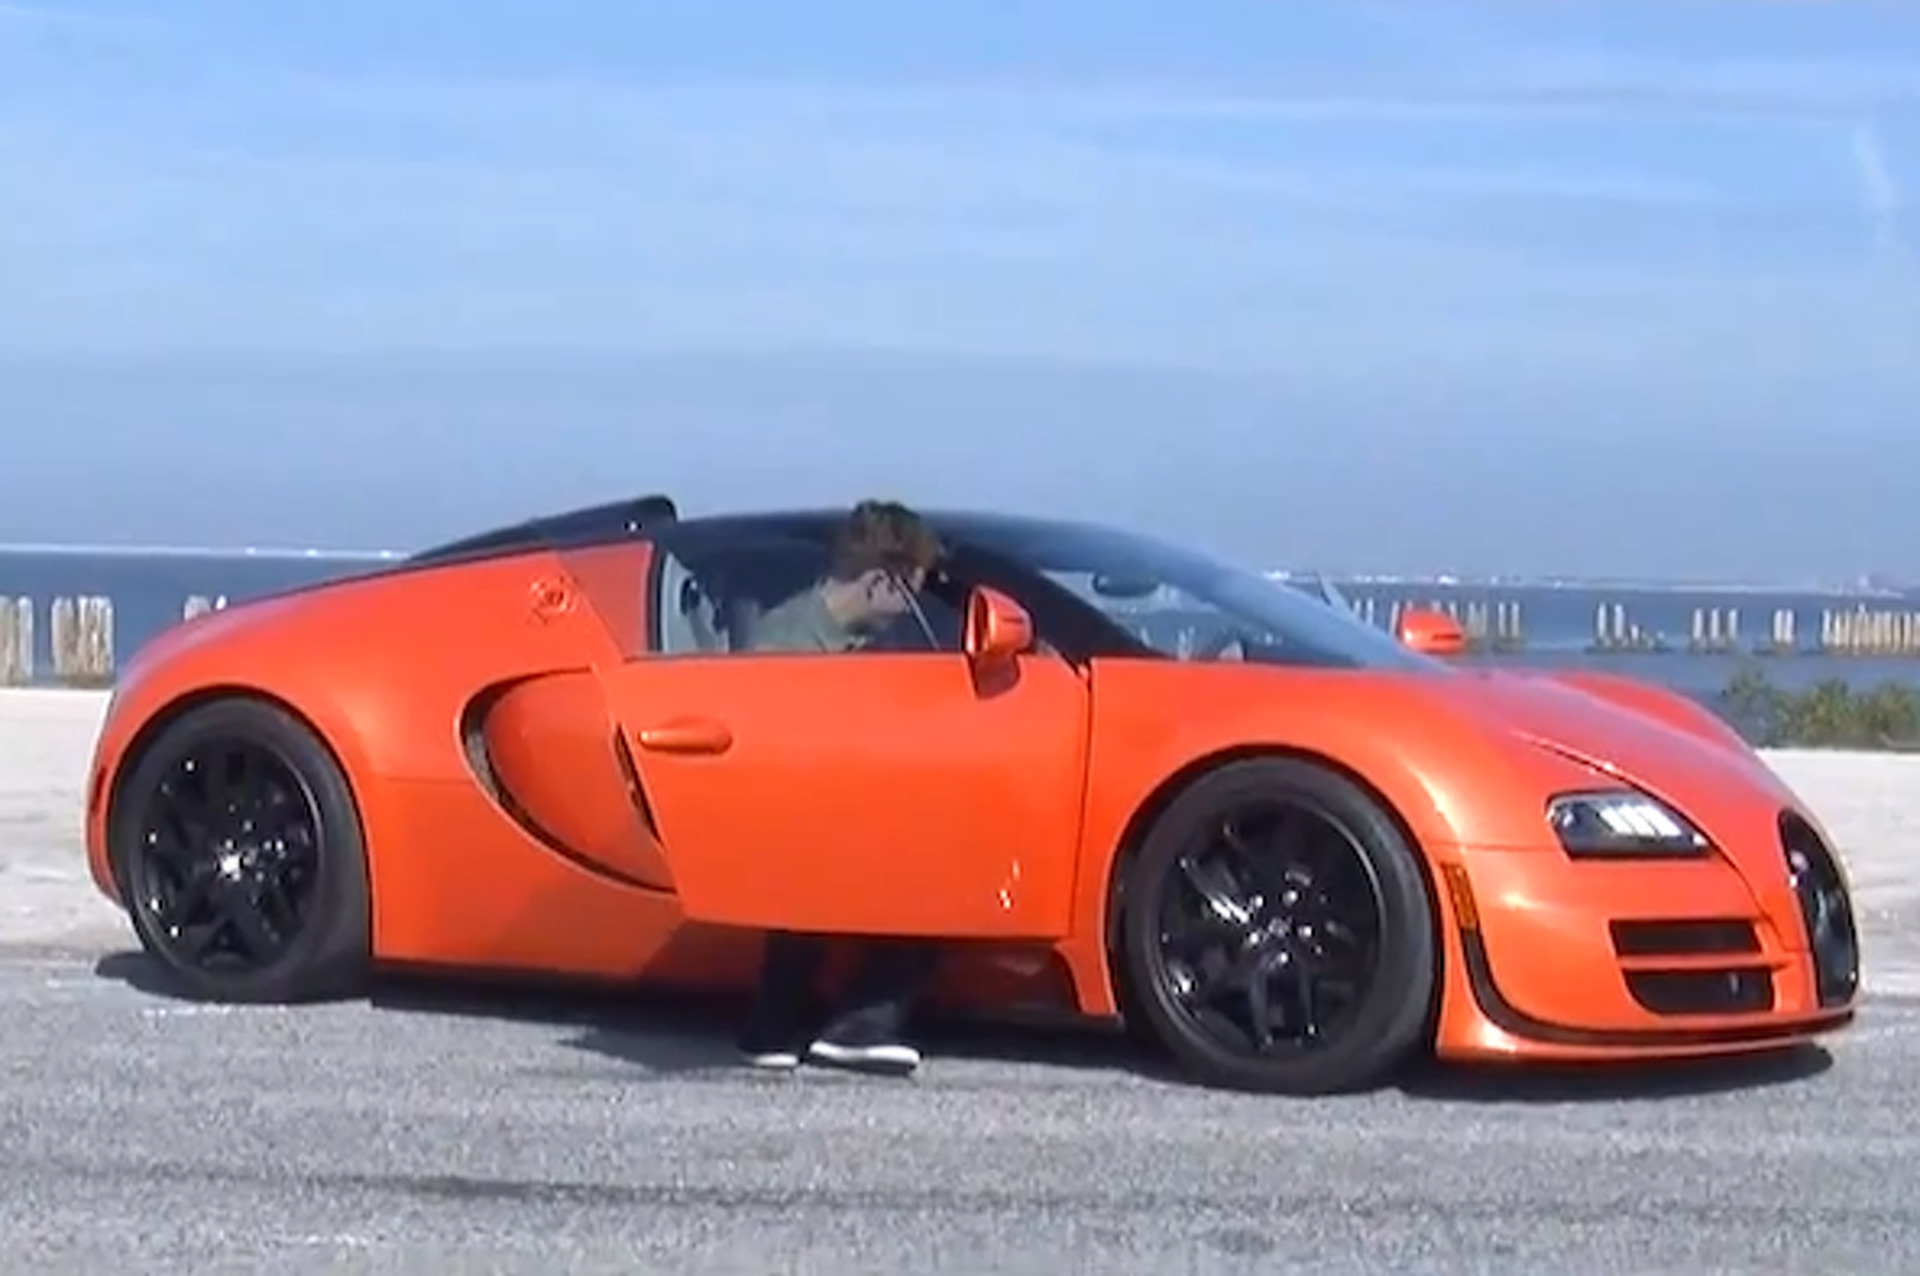 top-gear-usa-bugatti-veyron-speed-run-postponed Exciting Bugatti Veyron Cost for Oil Change Cars Trend